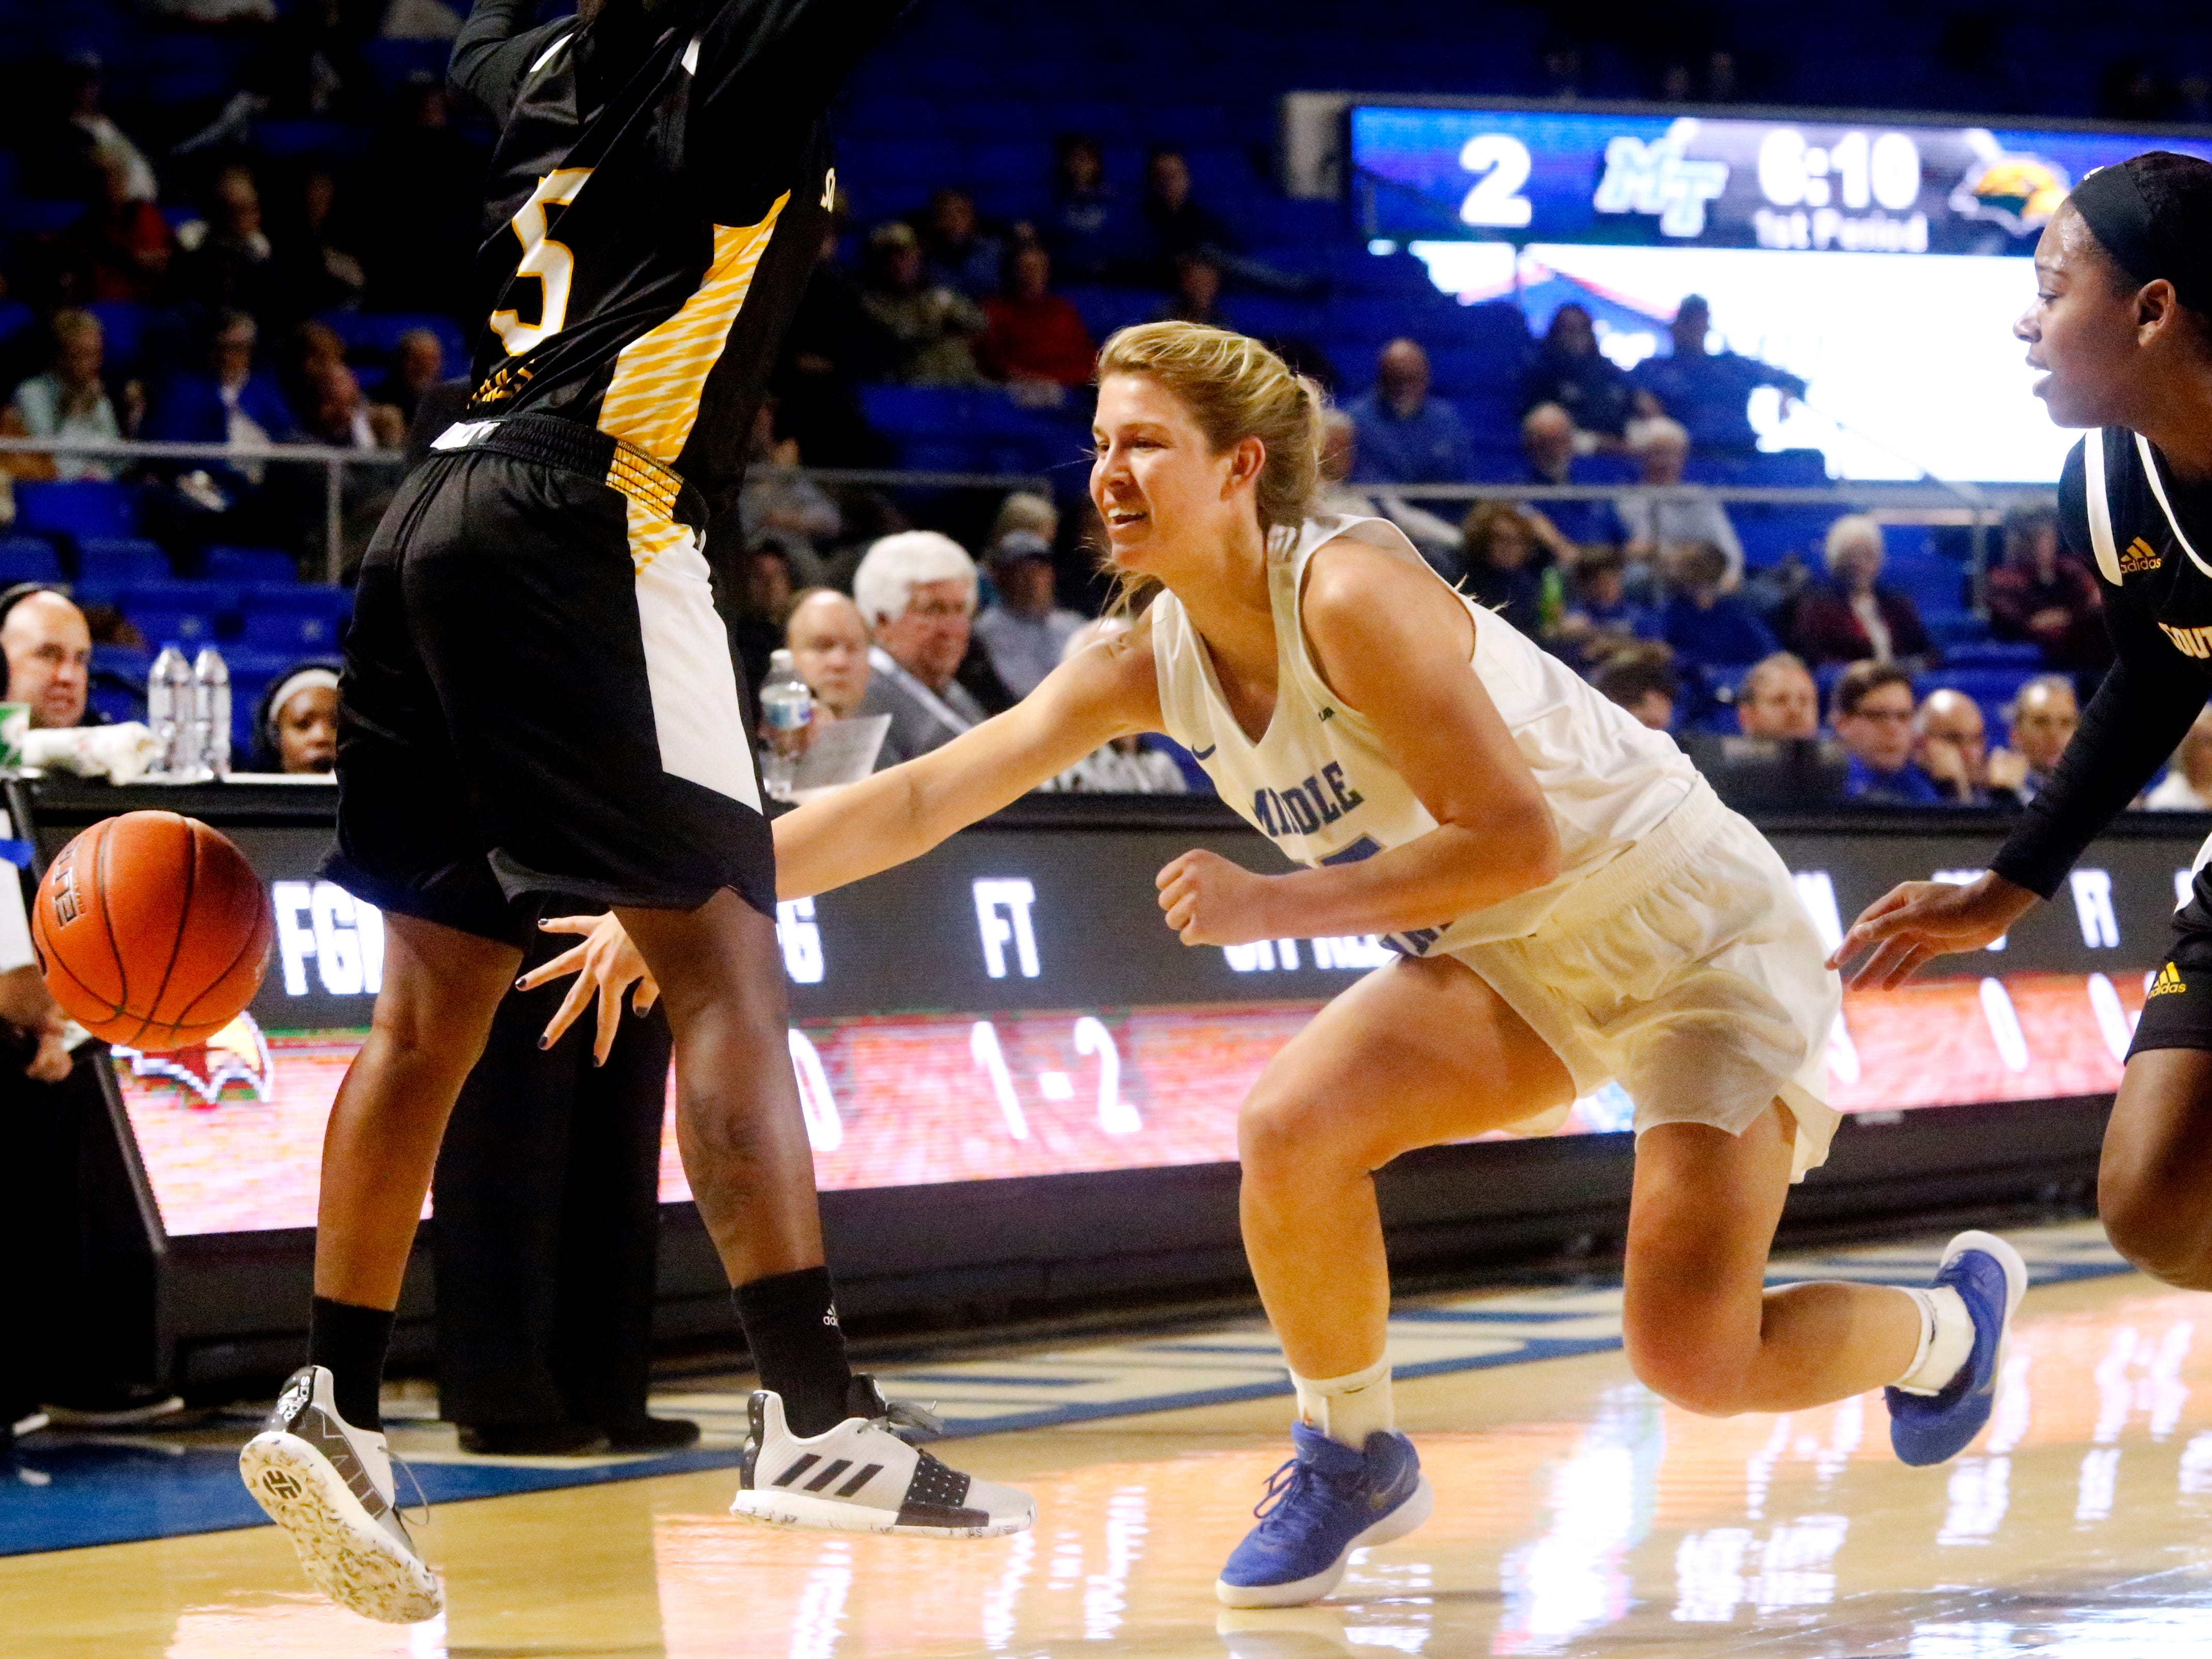 MTSU's guard Anna Jones (15) loses control of th eball as he is defended by Southern Miss' Shonte Hailes (5) and Alarie Mayze (25) on Thursday Jan. 10, 2019.